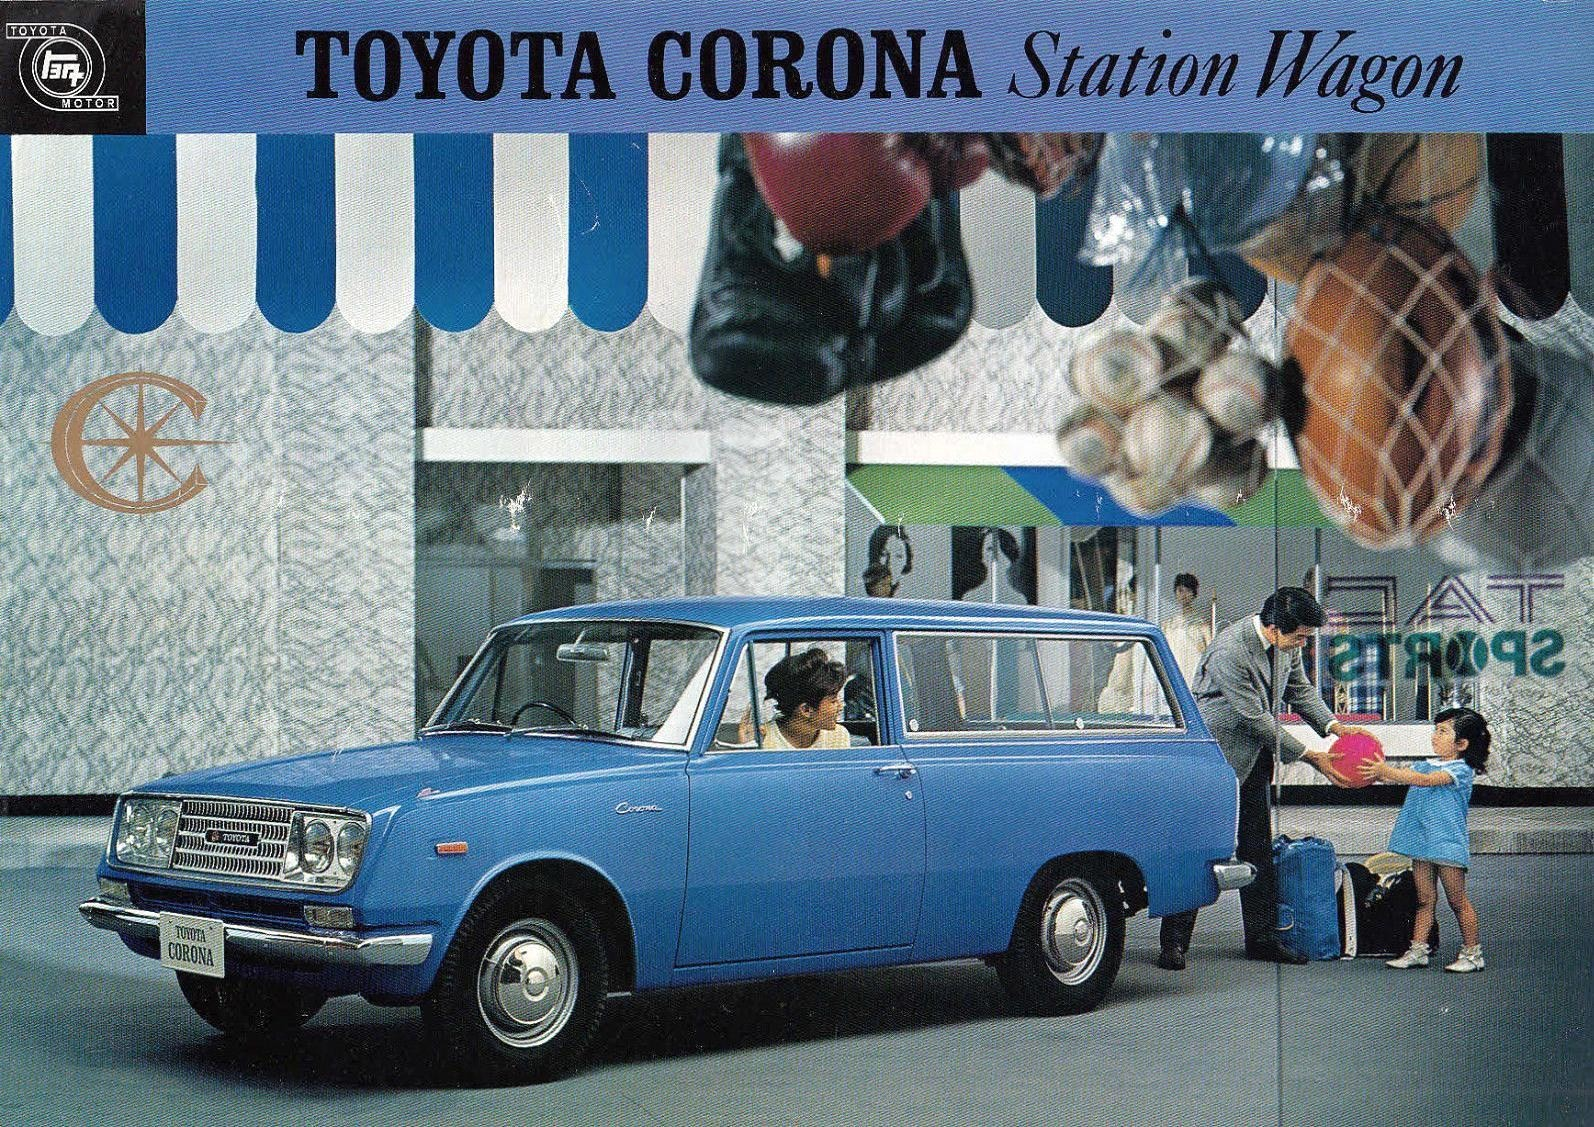 ToyotaCoronaStationWagon[RT46G](64)